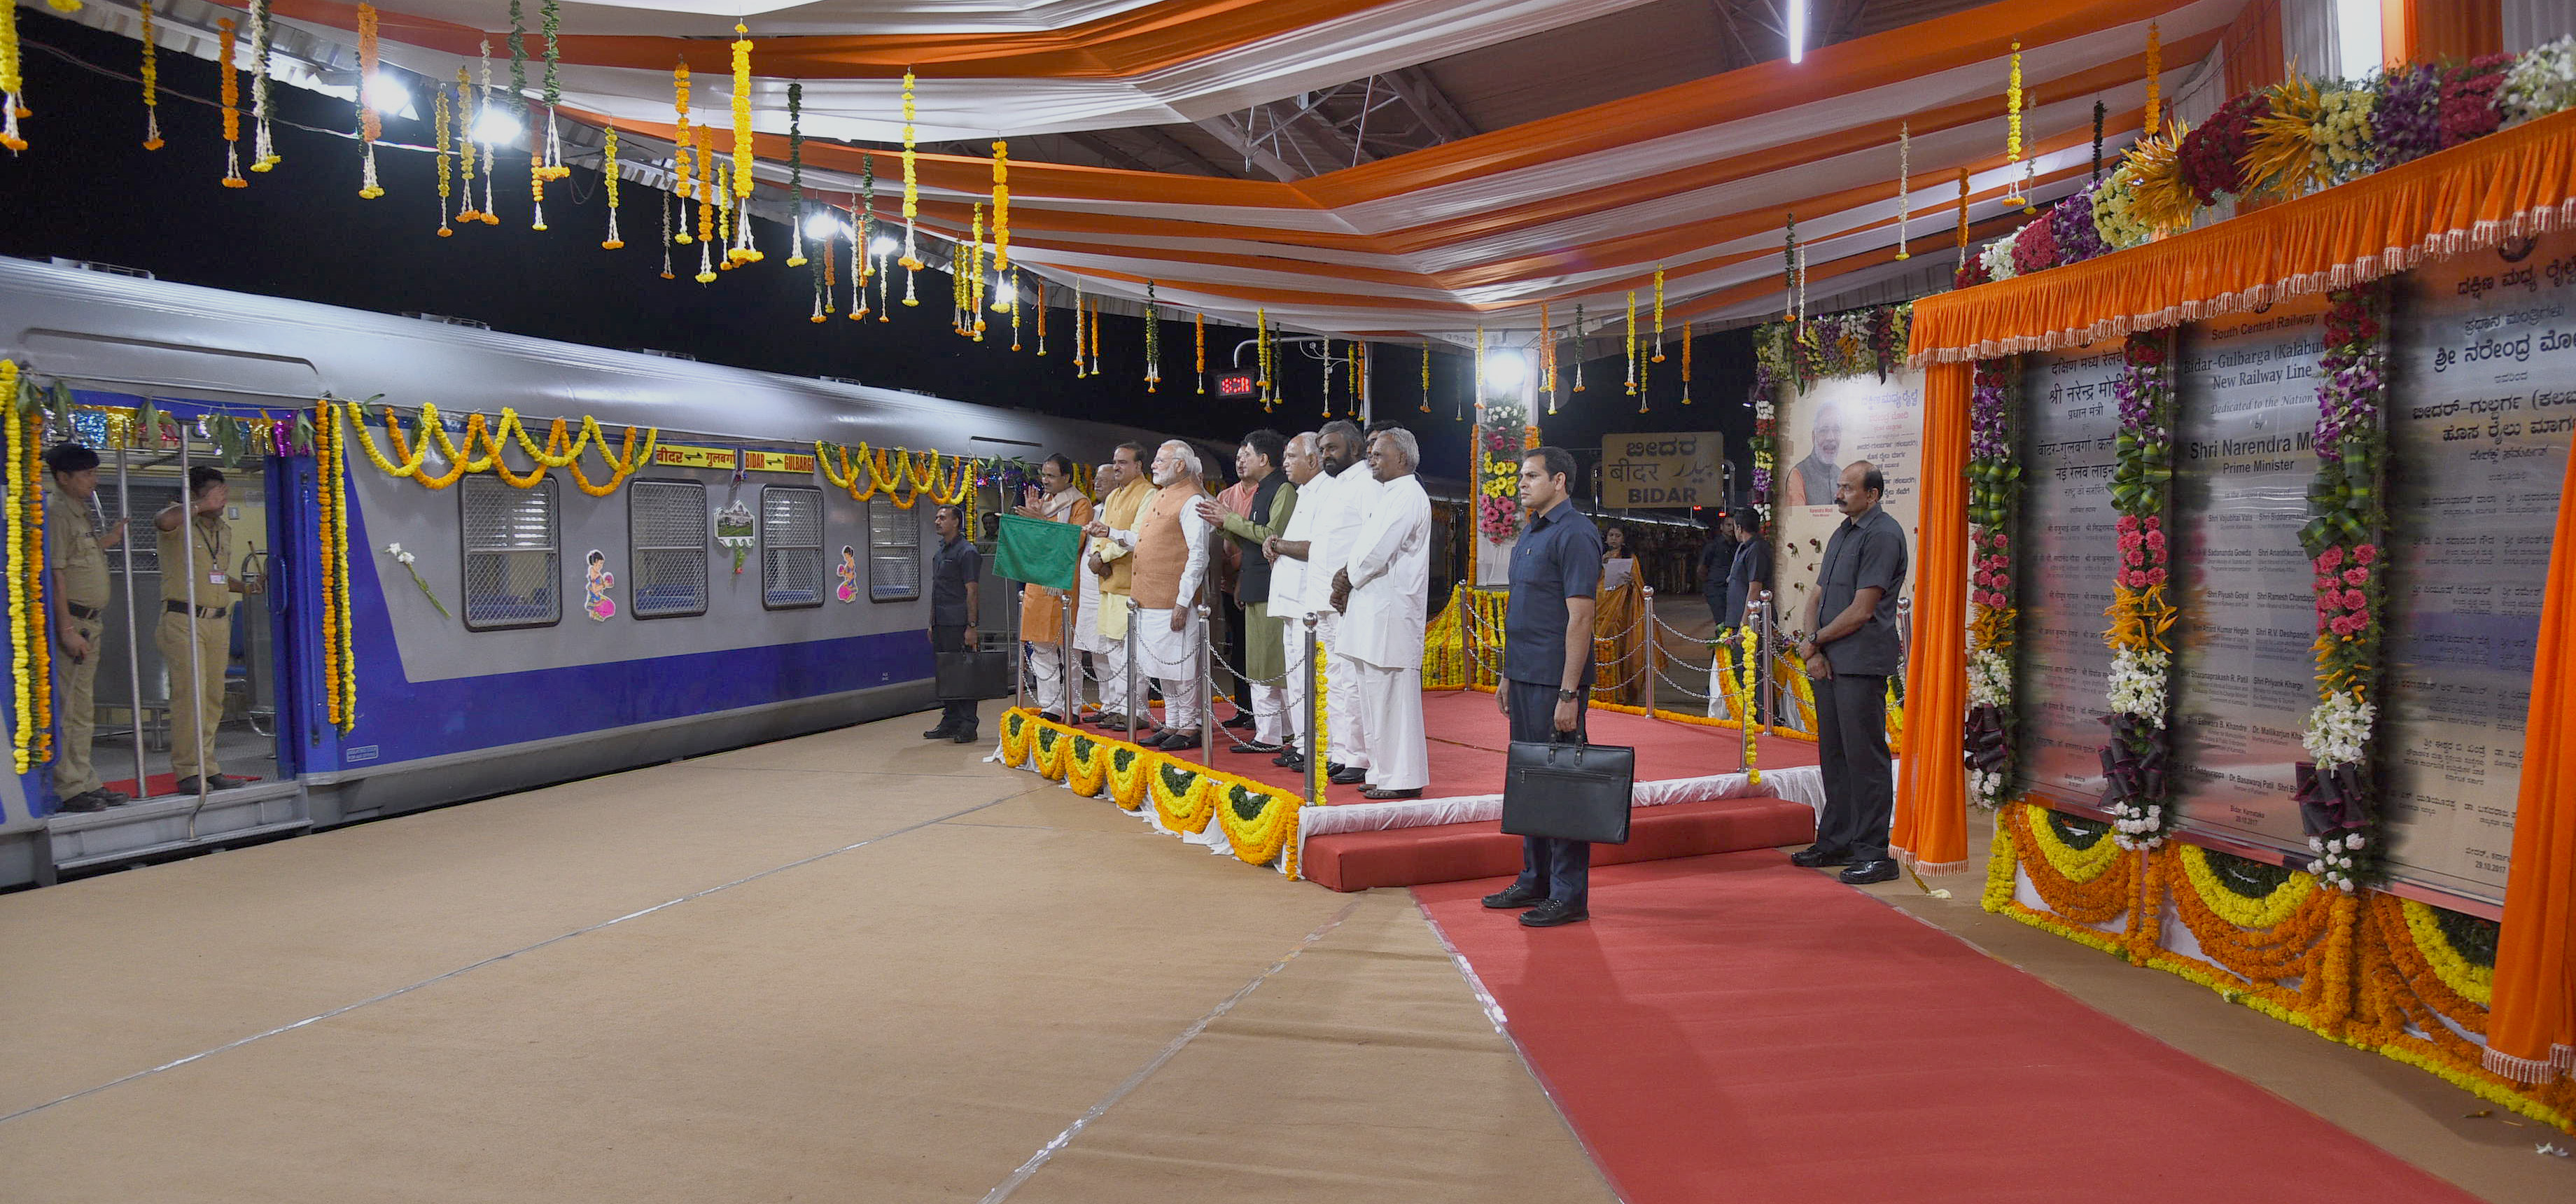 The Prime Minister, Shri Narendra Modi flagging-off the DEMU Service between Bidar and Kalaburagi, at Bidar Railway Station, in Karnataka on October 29, 2017.